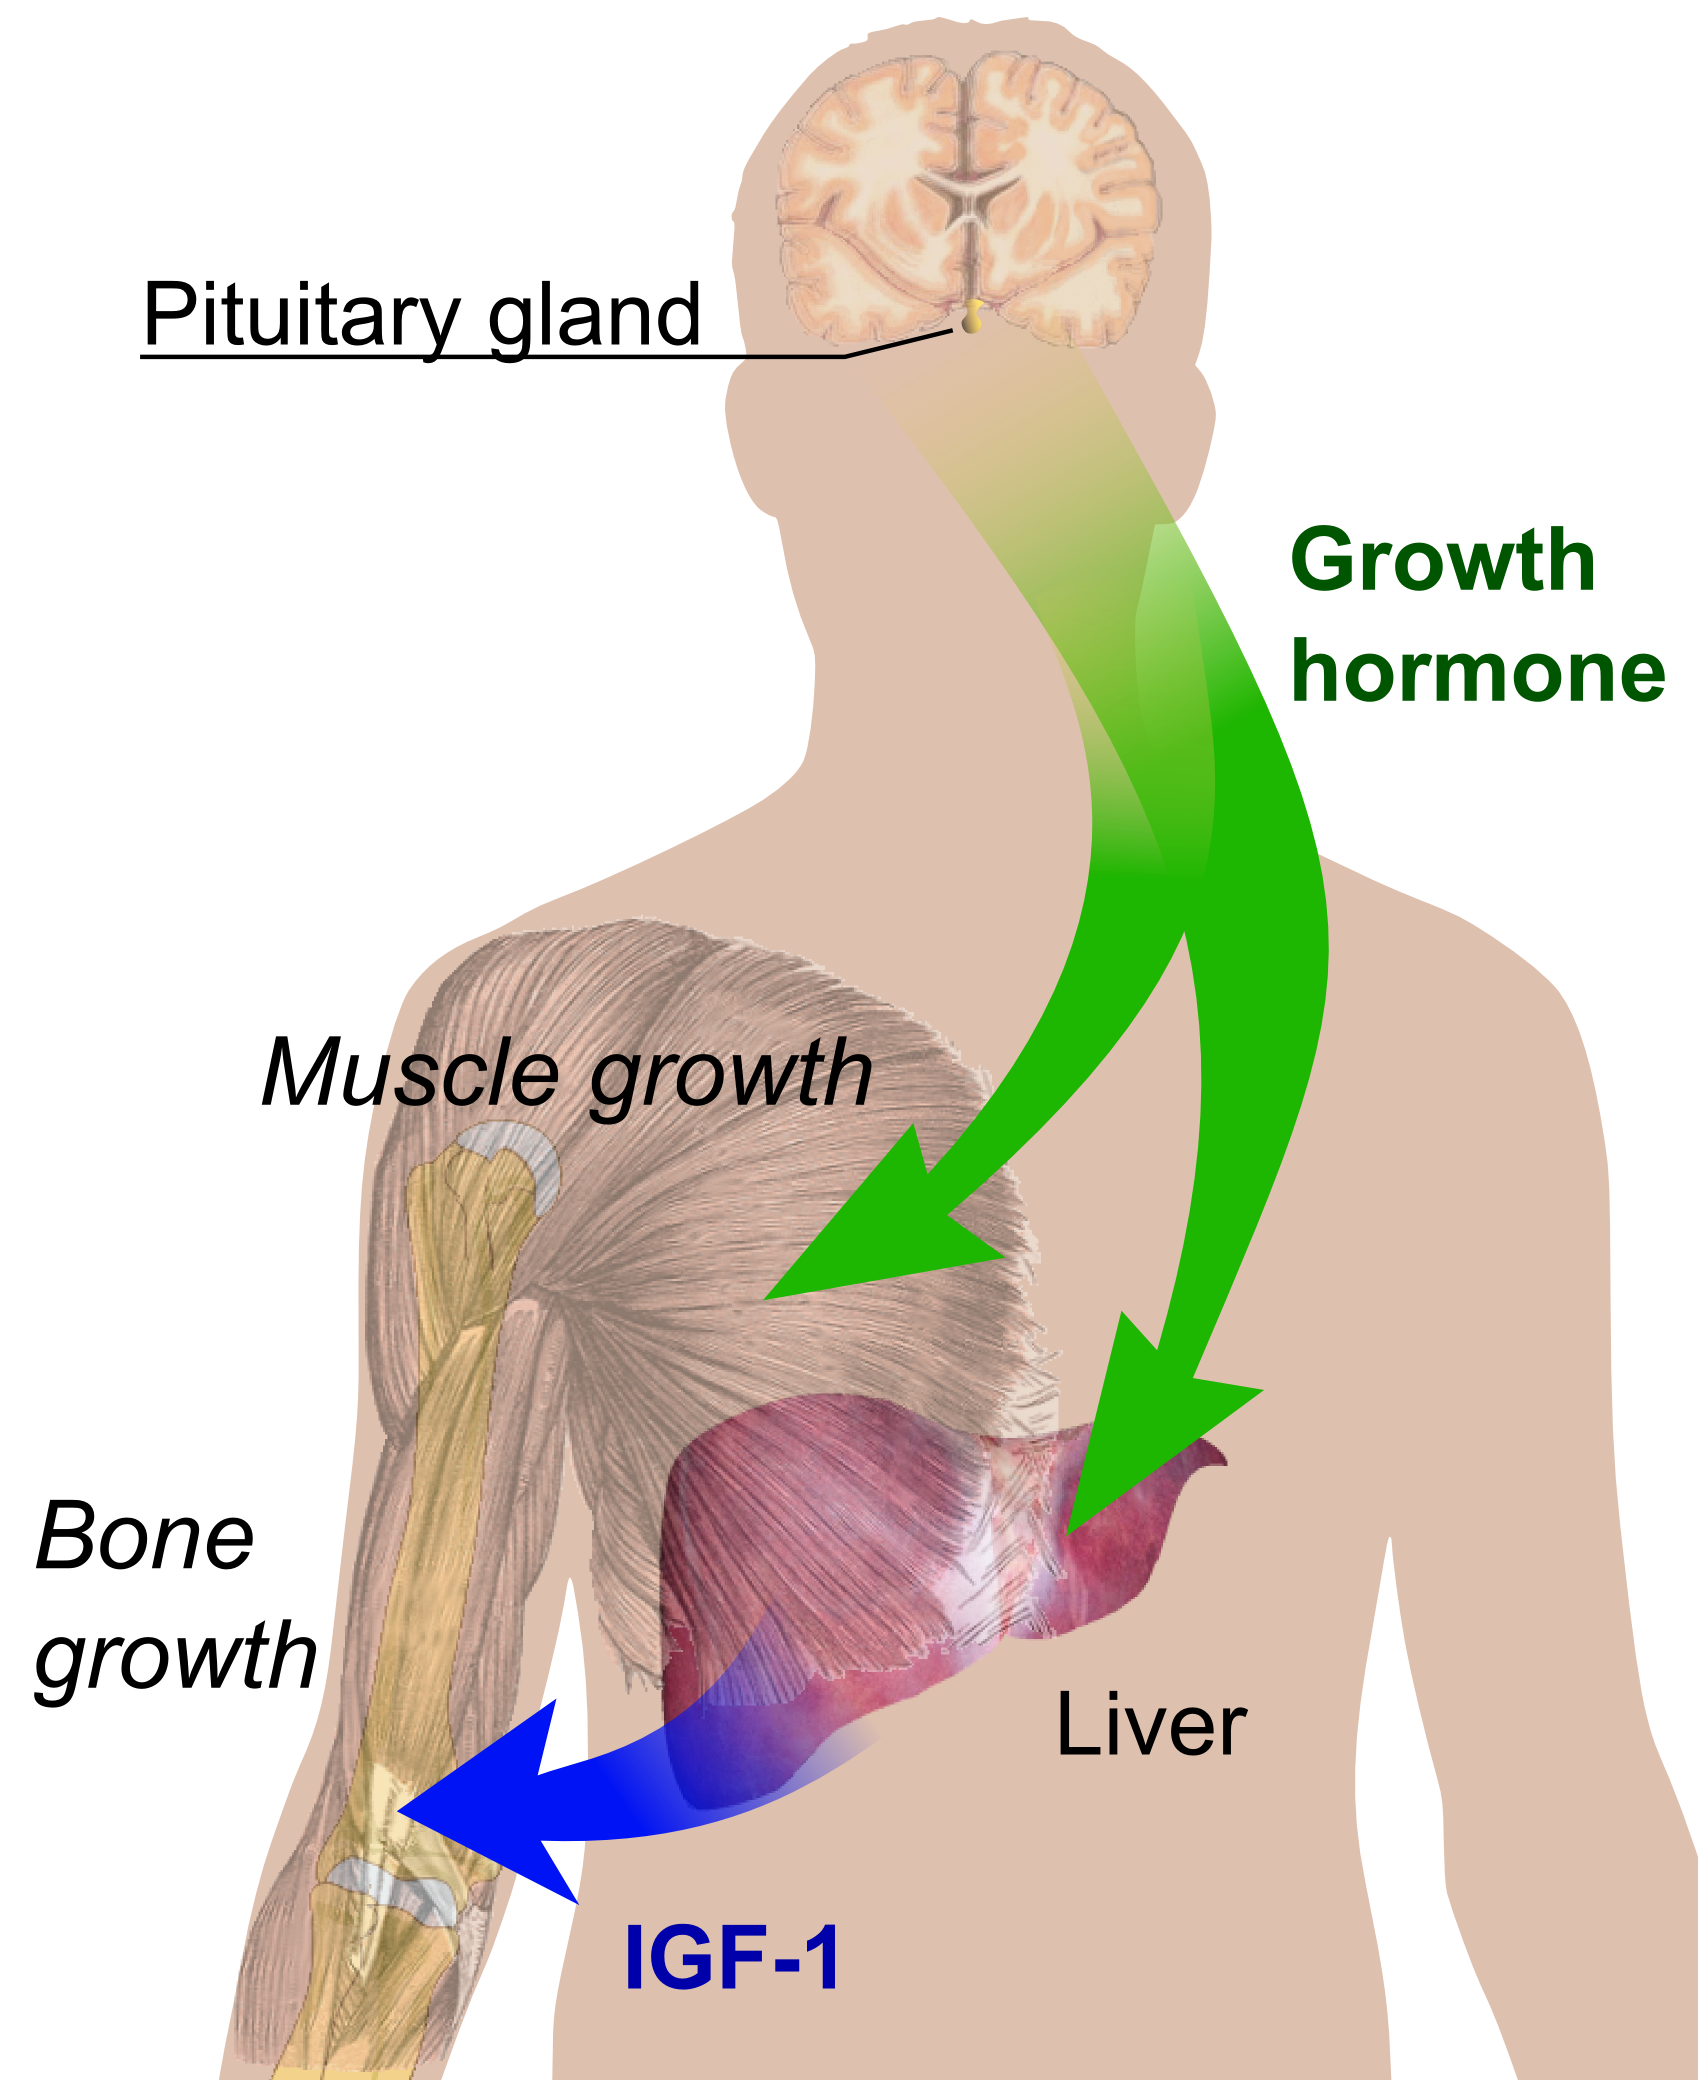 [Image: Endocrine_growth_regulation.png]